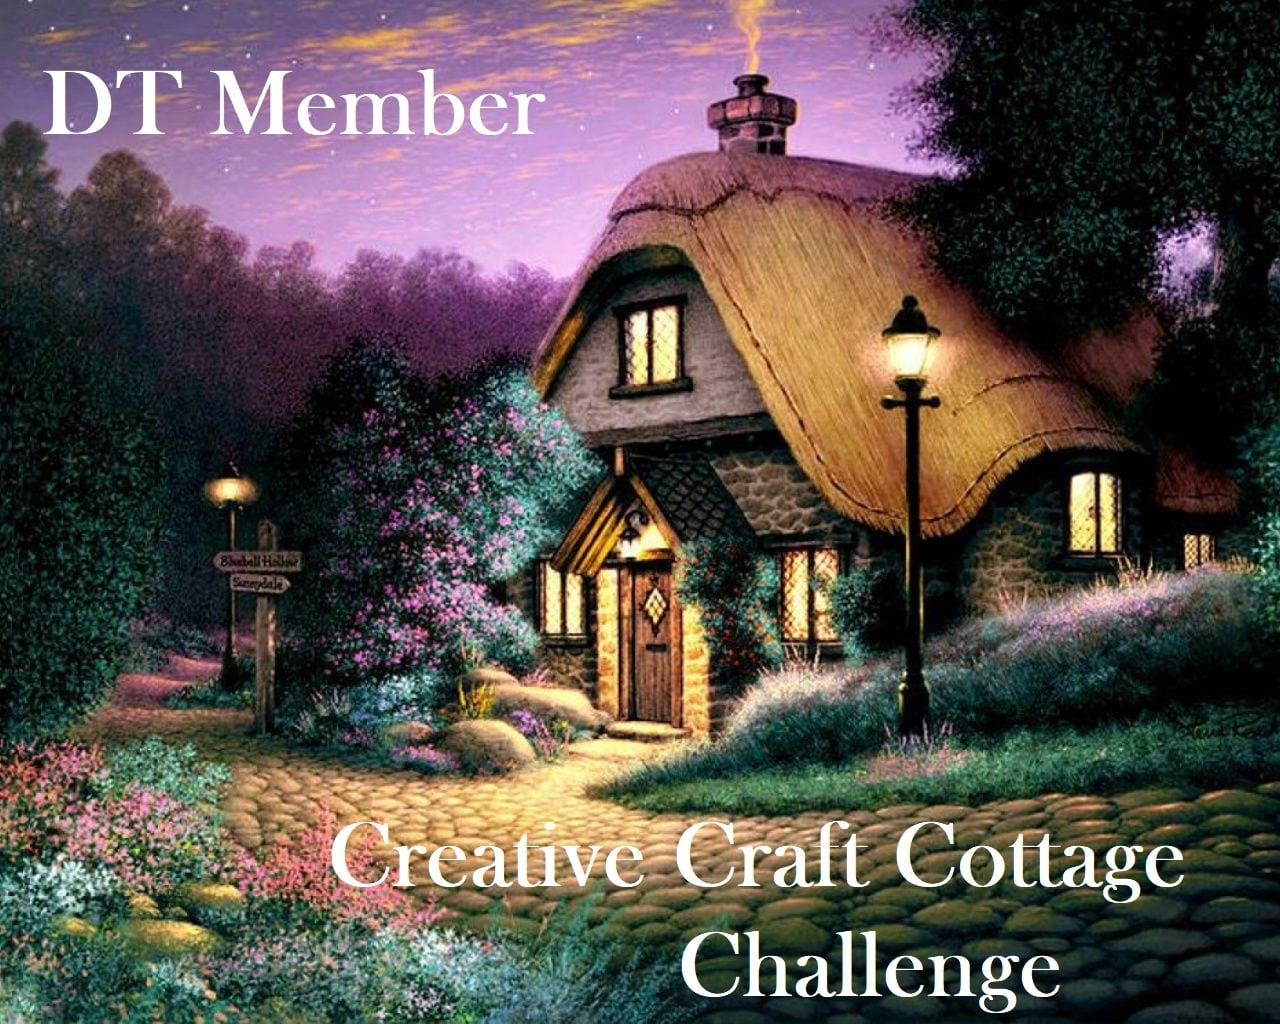 DT Creative Craft Cottage